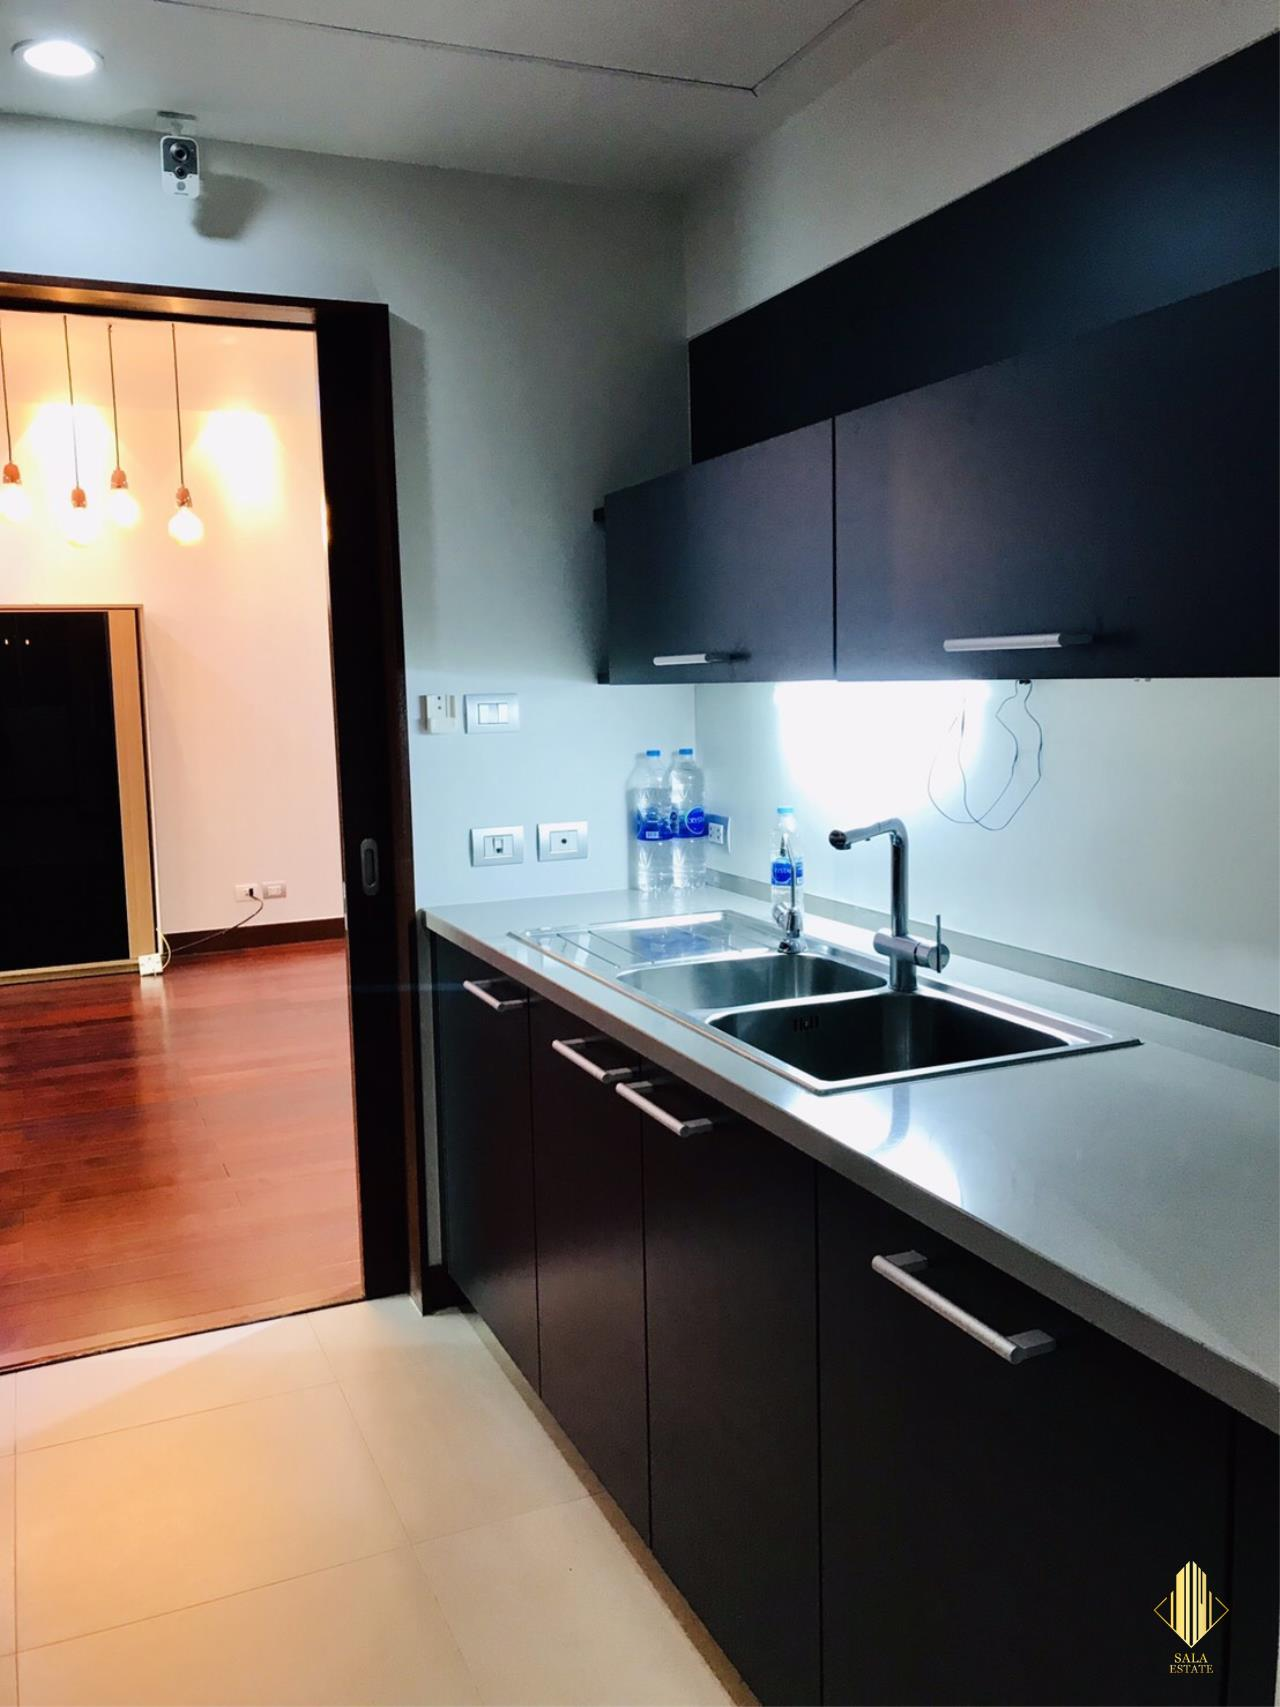 SALA ESTATE Agency's ( FOR SALE/RENT ) THE PARK CHIDLOM – BTS CHIDLOM, 145 SQM, 2 BEDROOMS 2 BATHROOMS, CITY VIEW 8